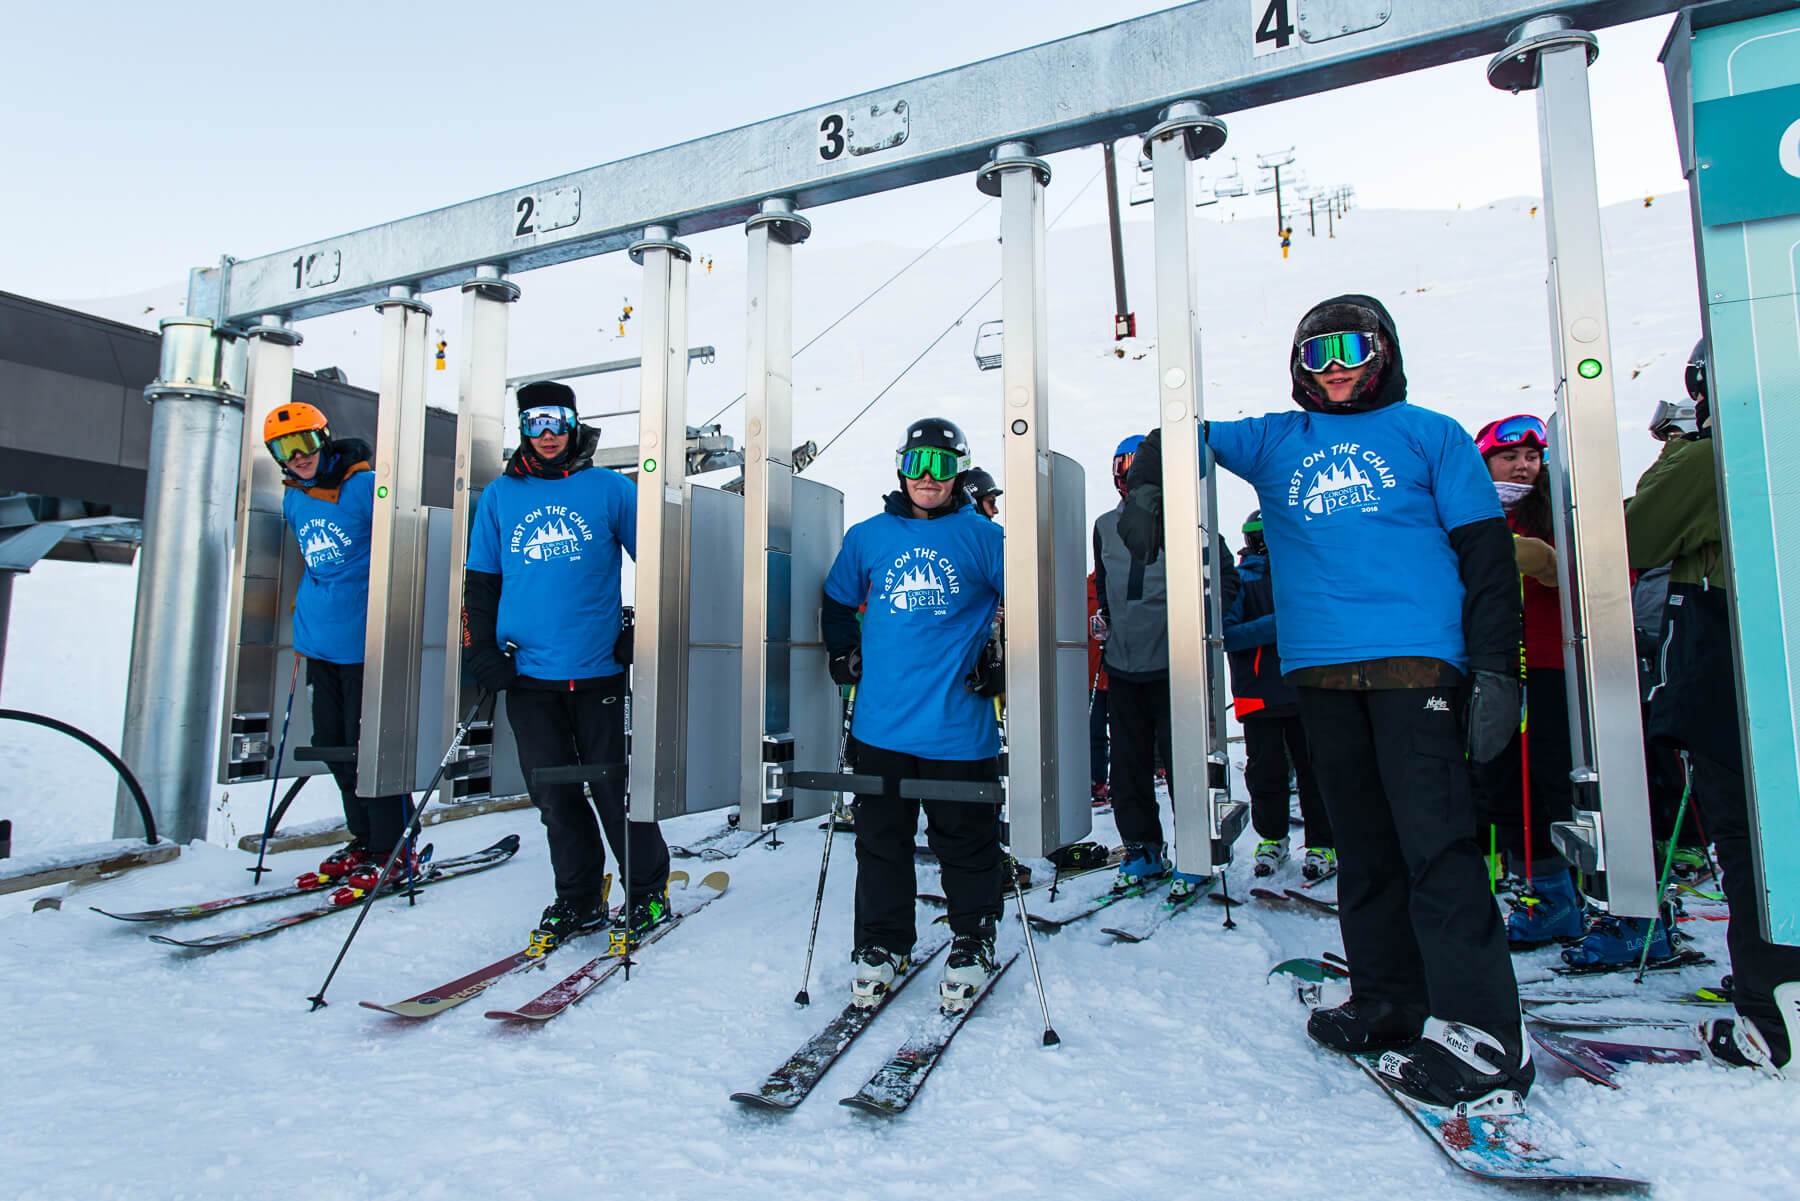 First on the lift, from left to right are 15-year-old high school locals Charlie Hogan, Toby Duffy, Ben Robinson and Levi Collins.